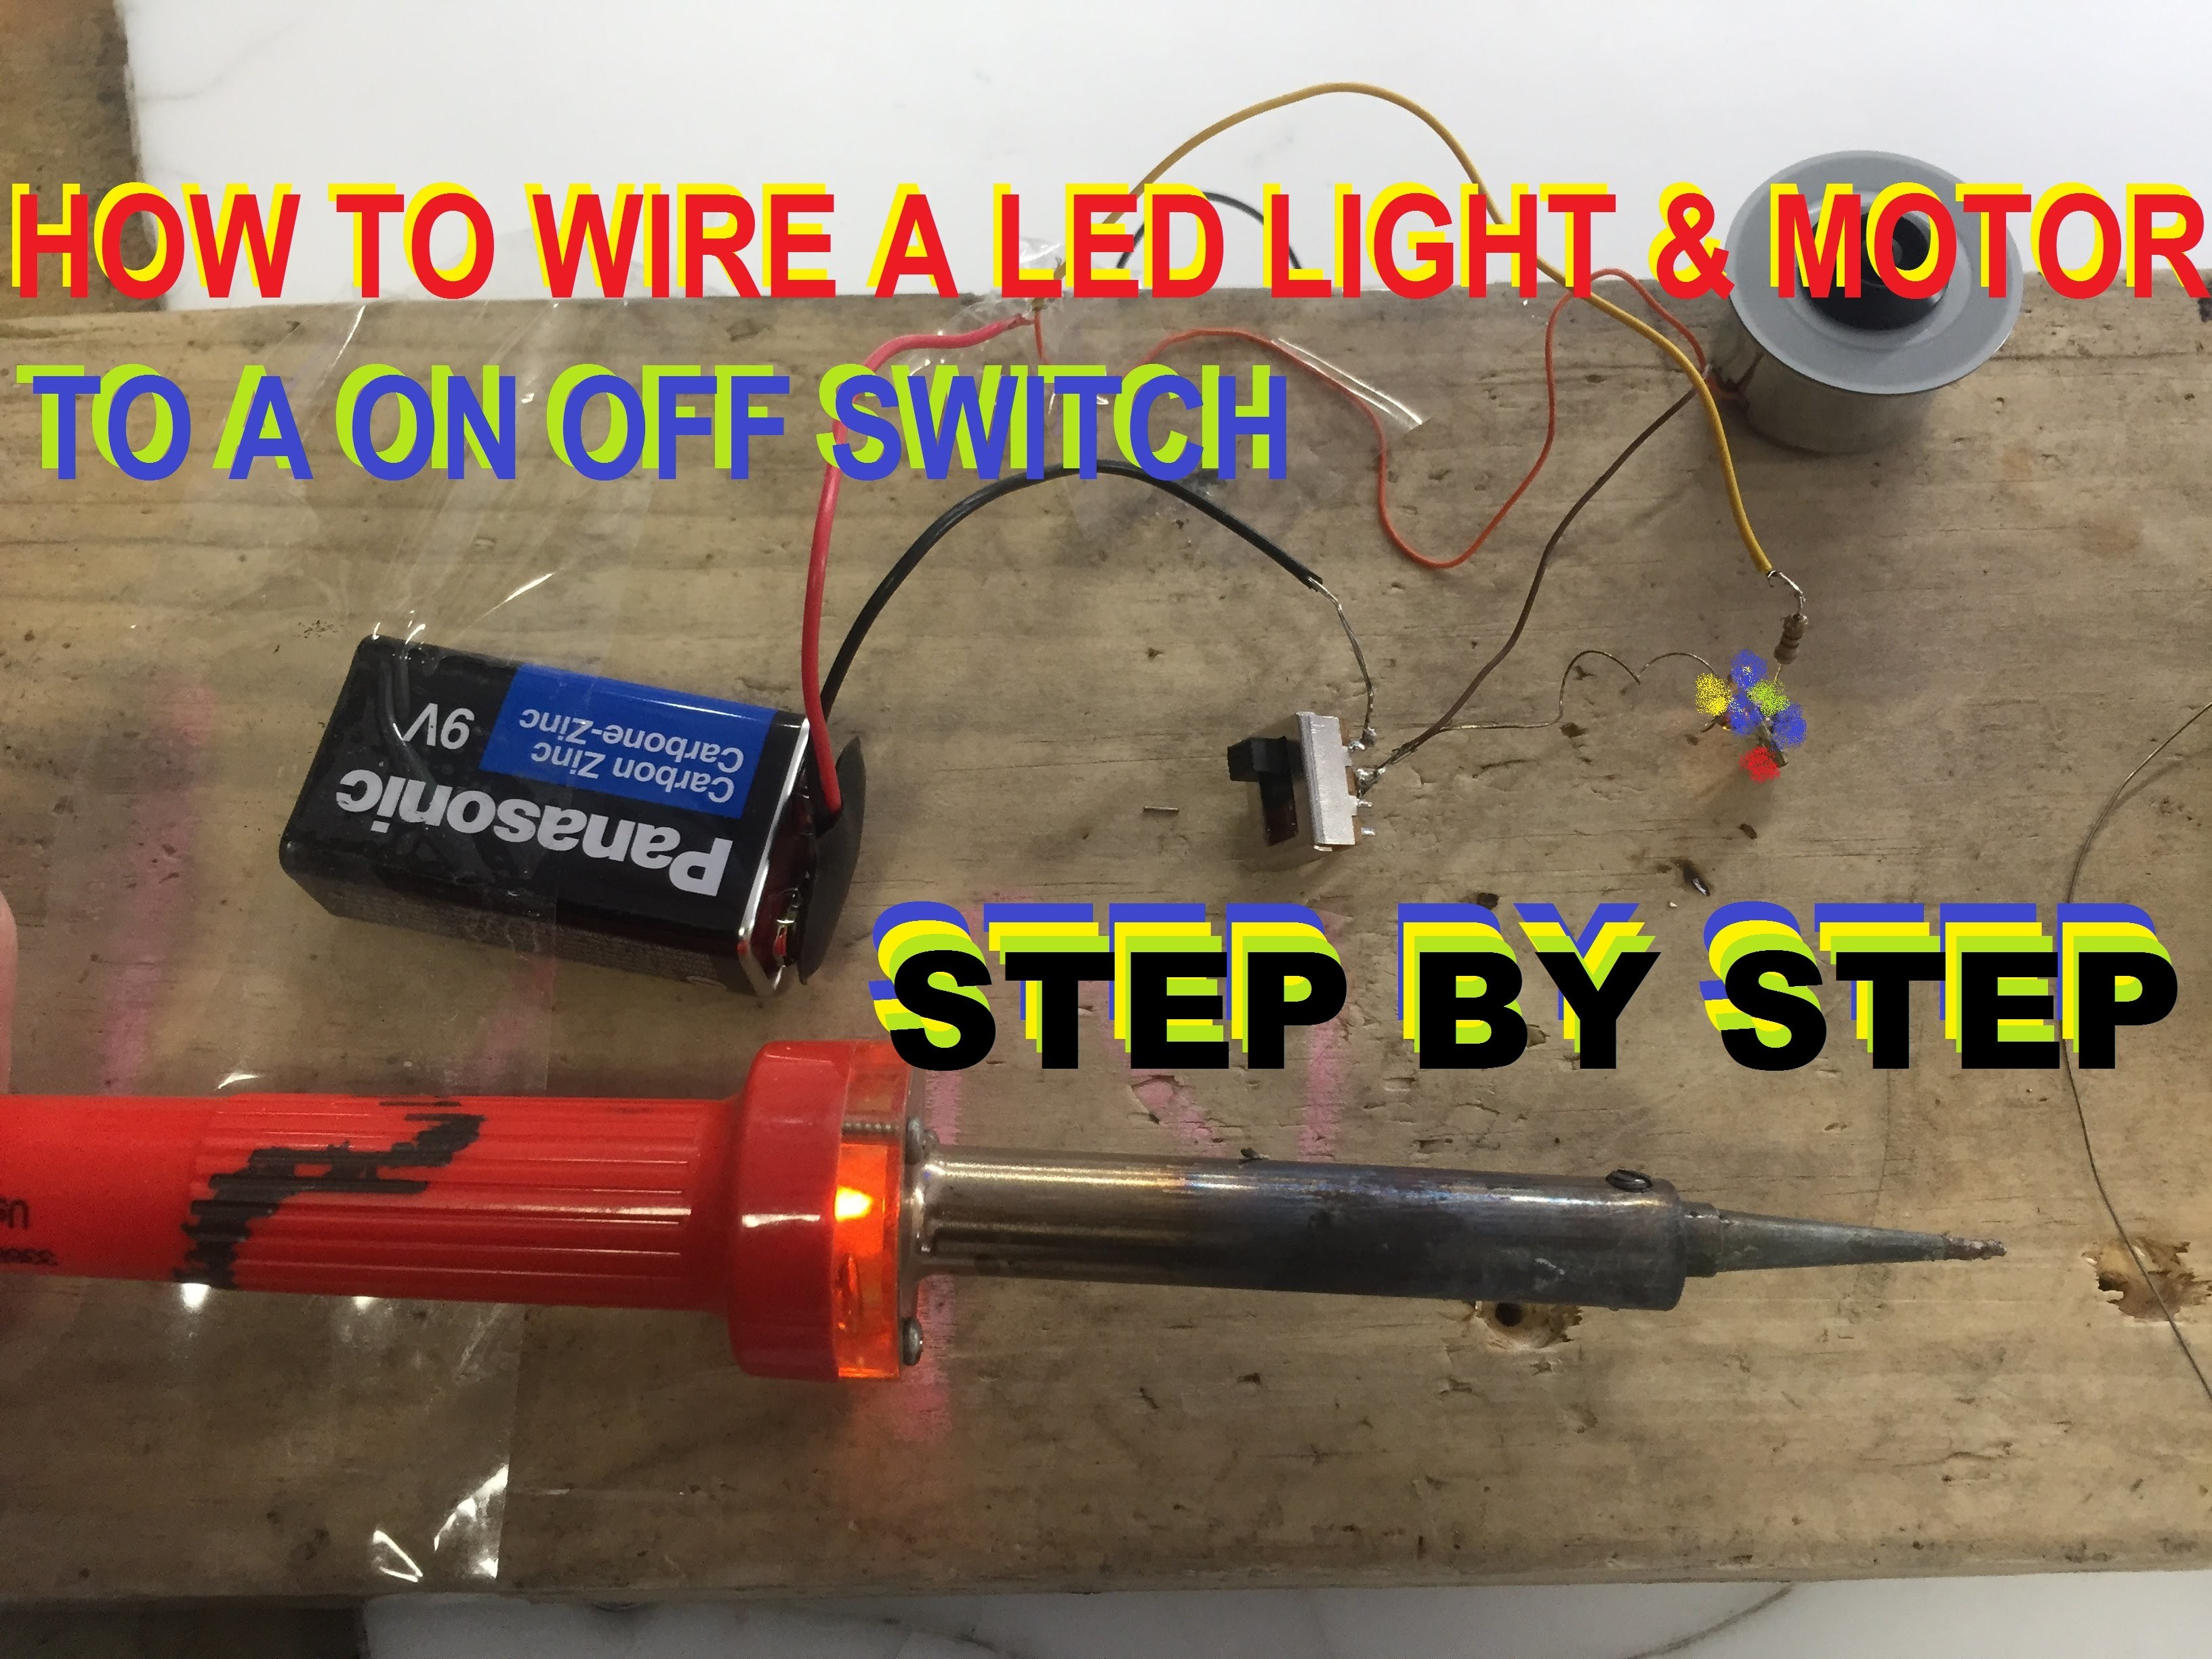 How to wire